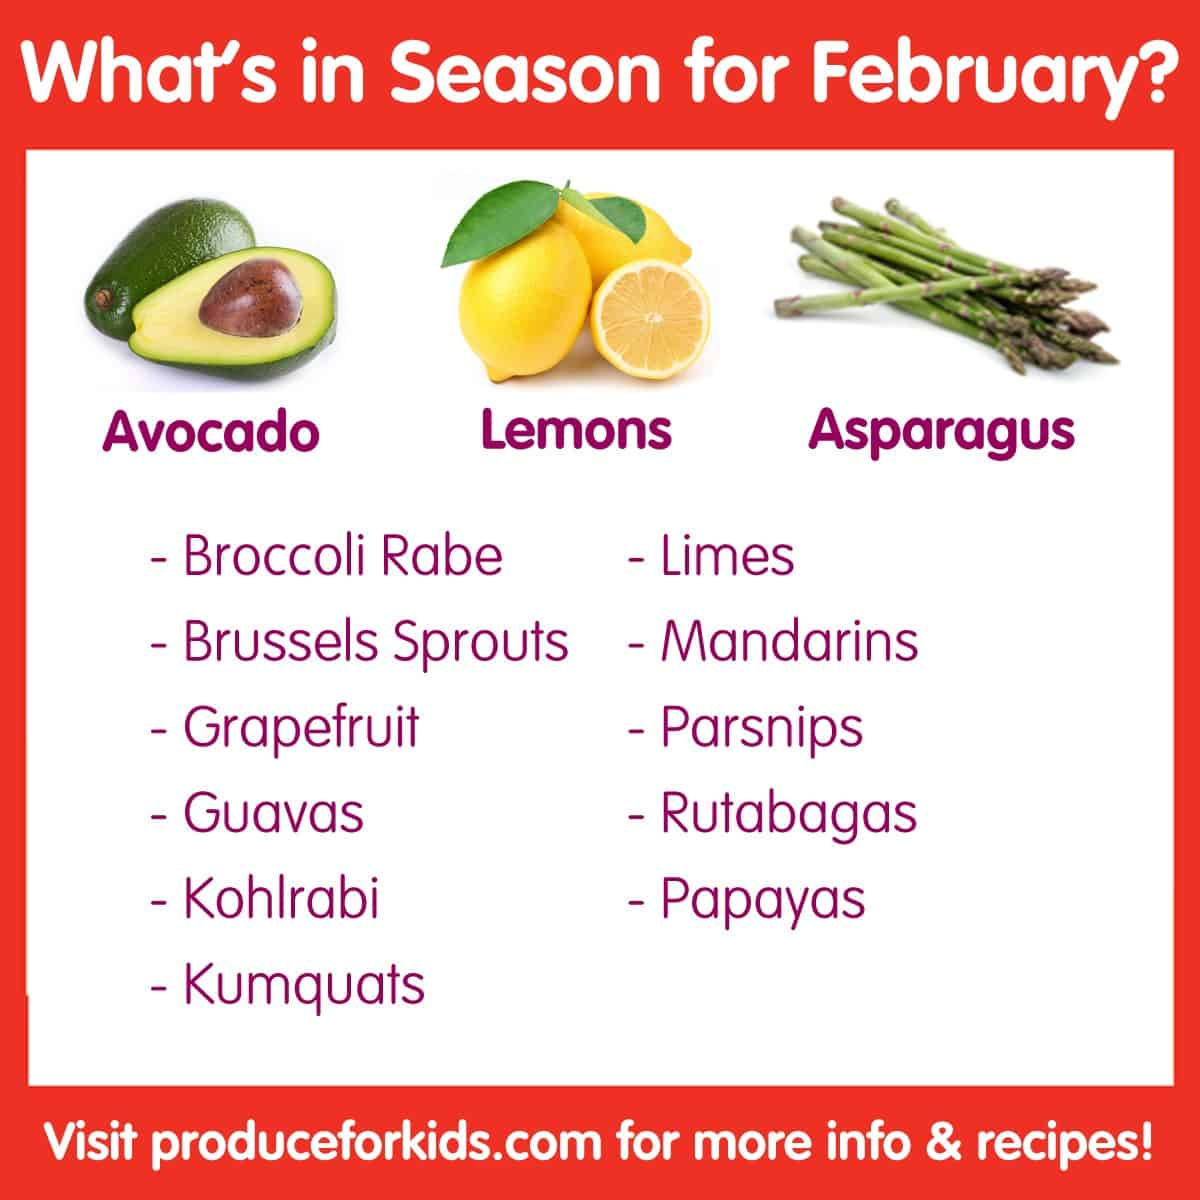 What's in Season for February?